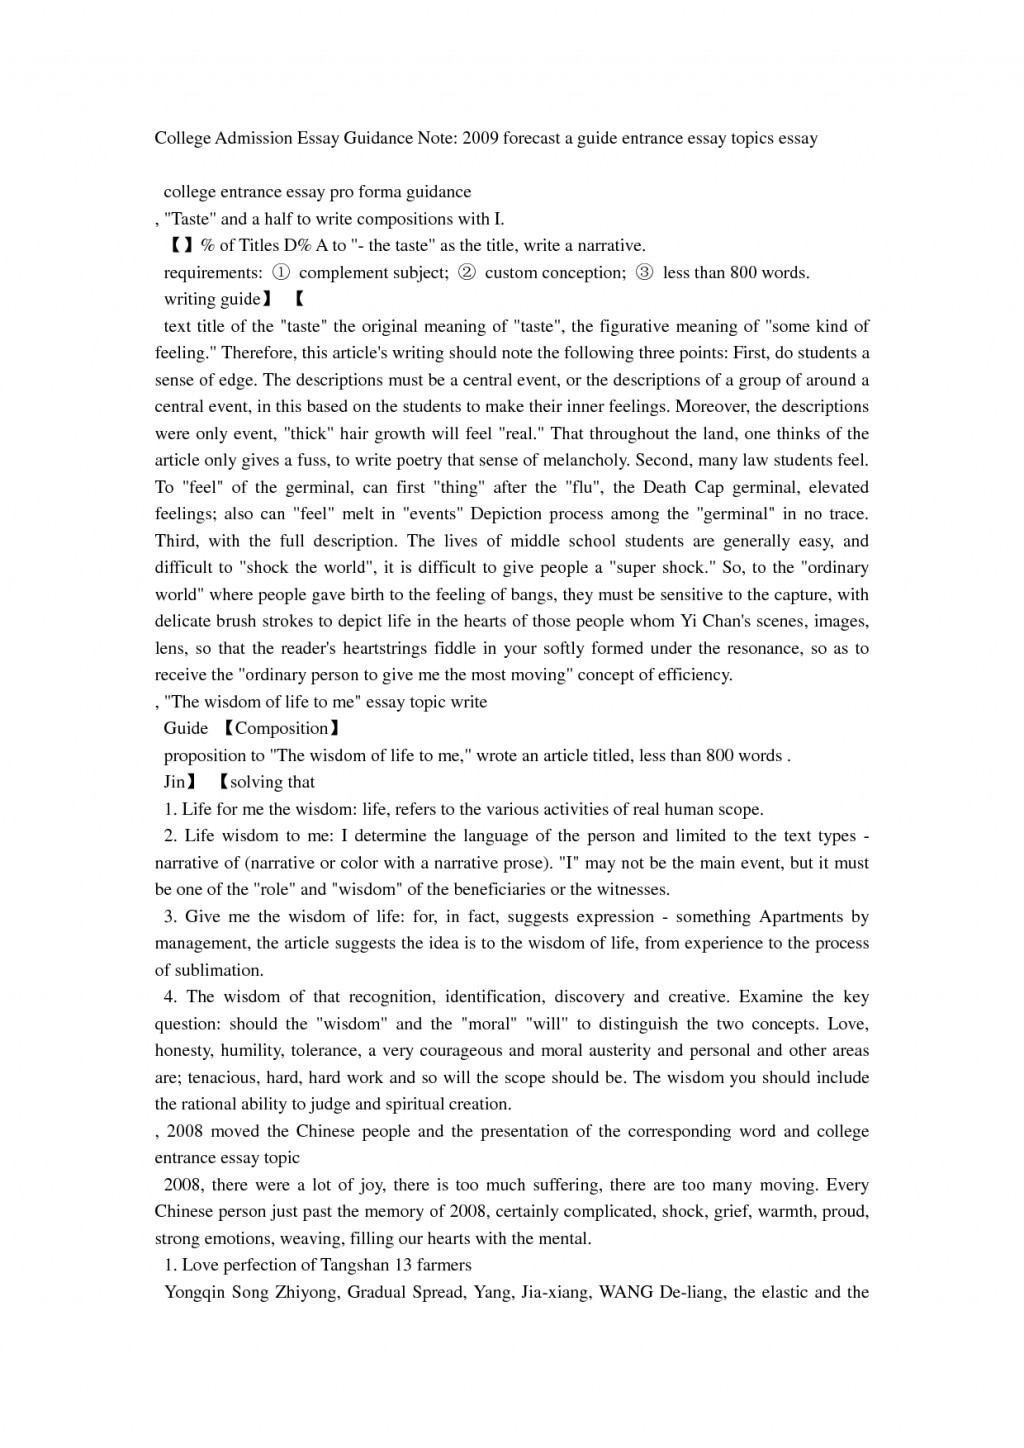 002 Top Essay Topics For College Example Controversial List Argument Of Easy Argumentative Xdaqu Great Middle School Gatsby Argumentativepersuasive Research Unbelievable 10 Large